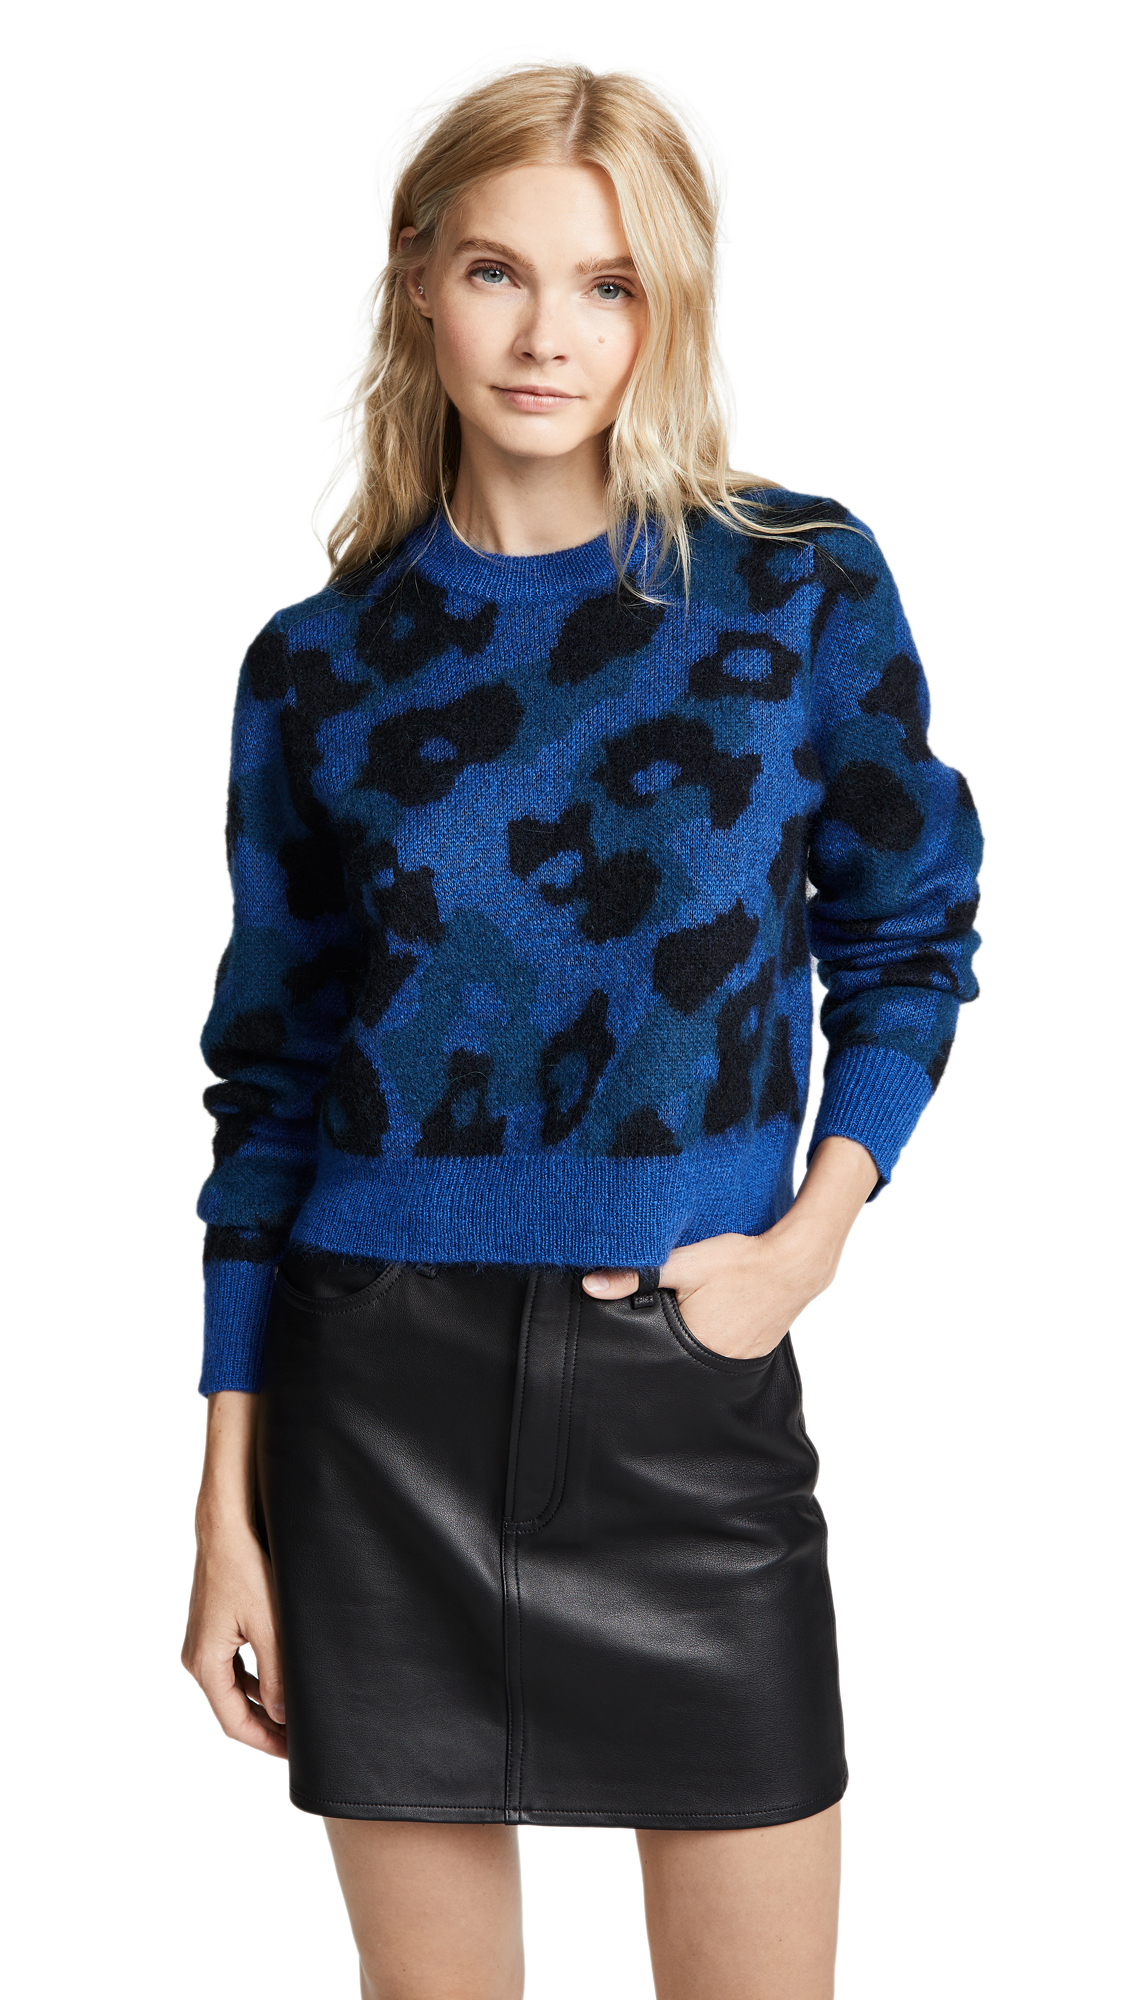 Leopard-Print Mohair-Blend Sweater - Blue Size M in Bright Blue